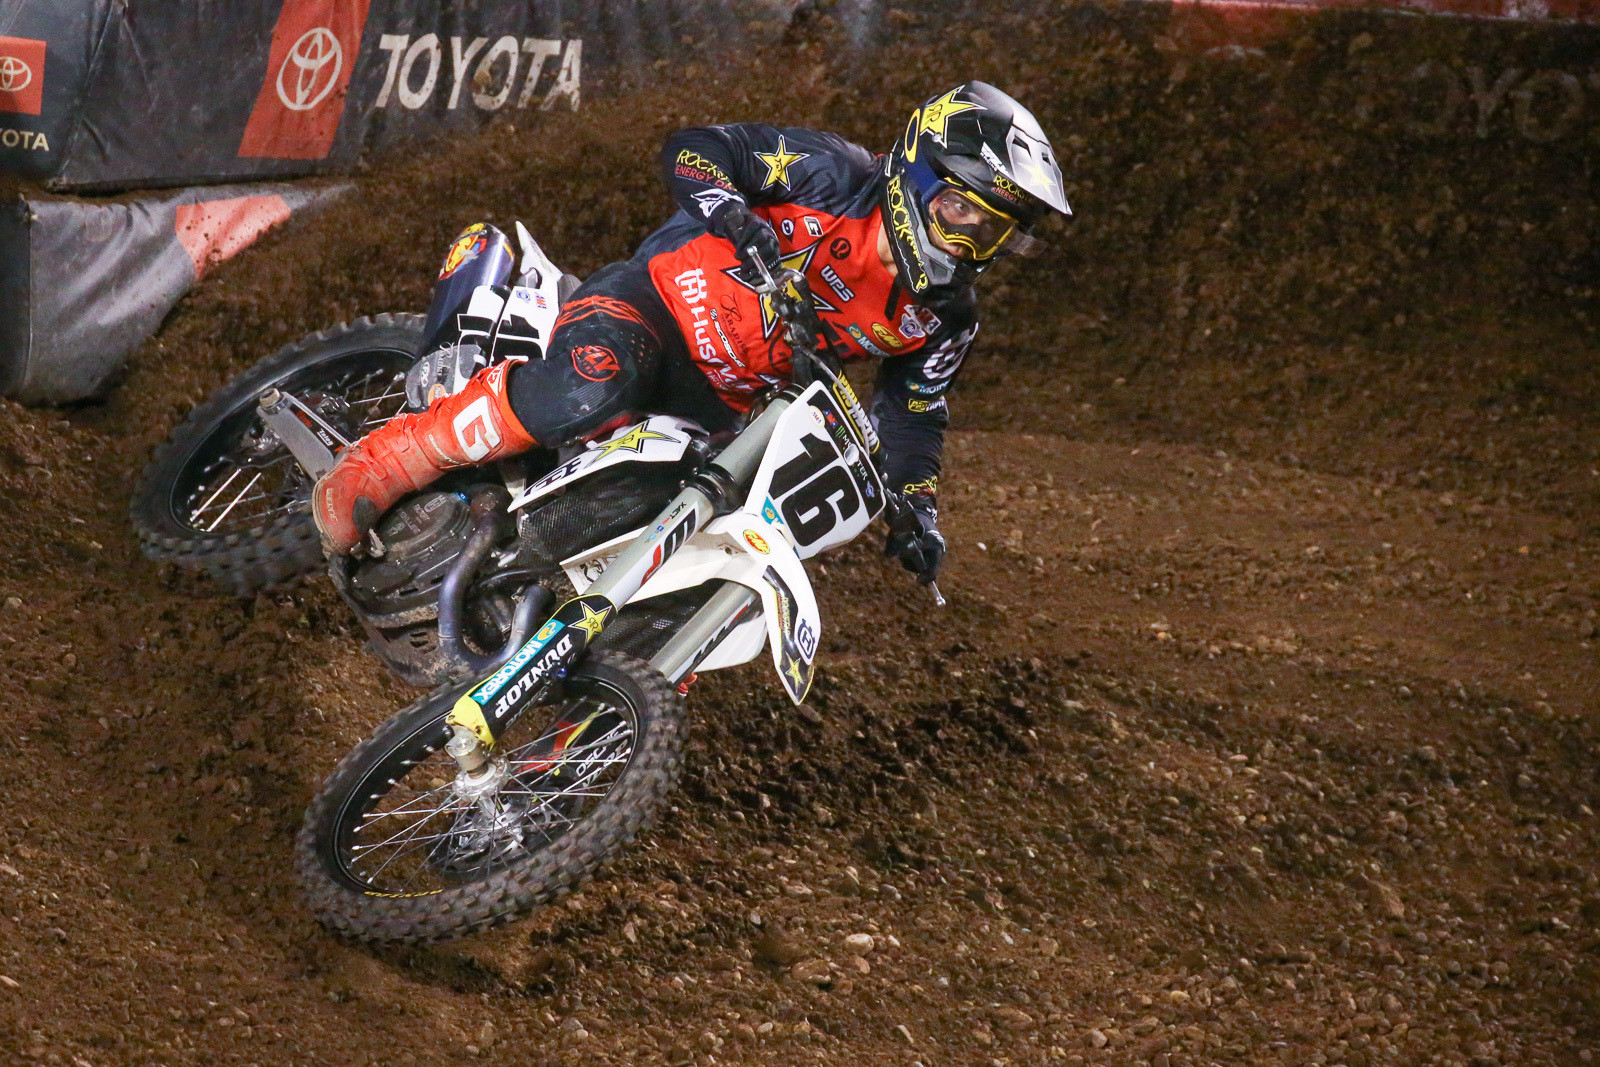 With his strong run and podium finish on Wednesday night, Zach Osborne jumped up two spots in the 450 series standings, to 11th.